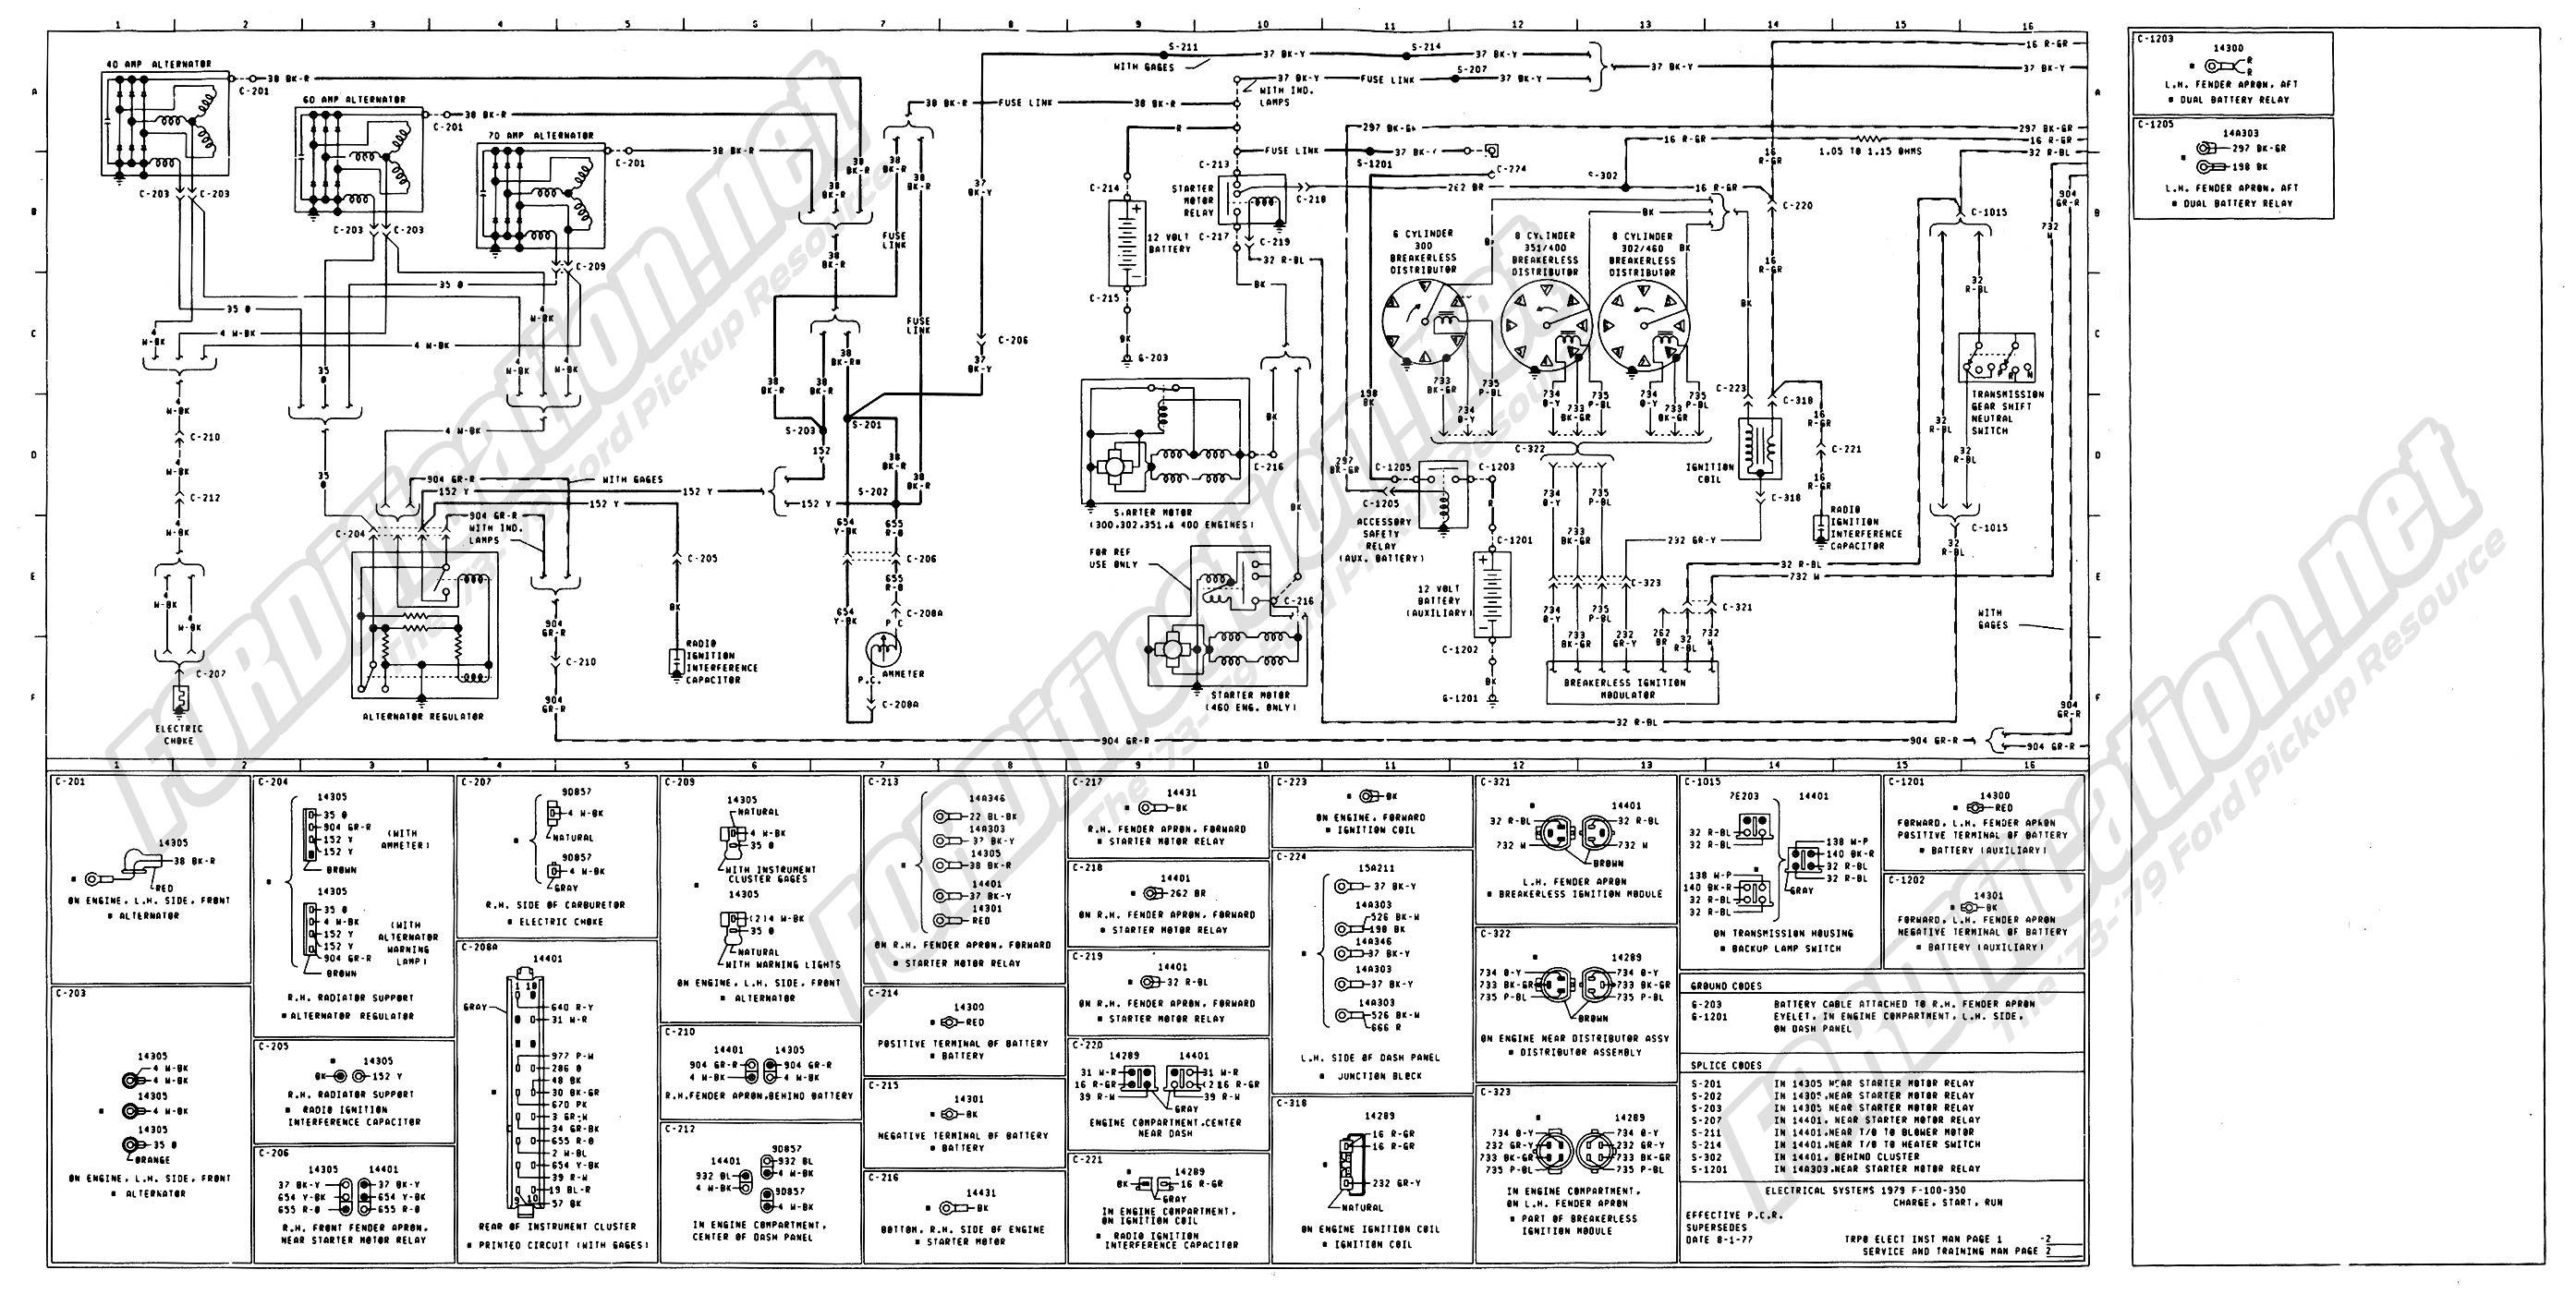 dash wiring diagram f 150 wiring diagram forward Ford Electronic Ignition Wiring Diagram dash wiring diagram f 150 wiring diagrams the dash wiring diagram f 150 source 2006 ford